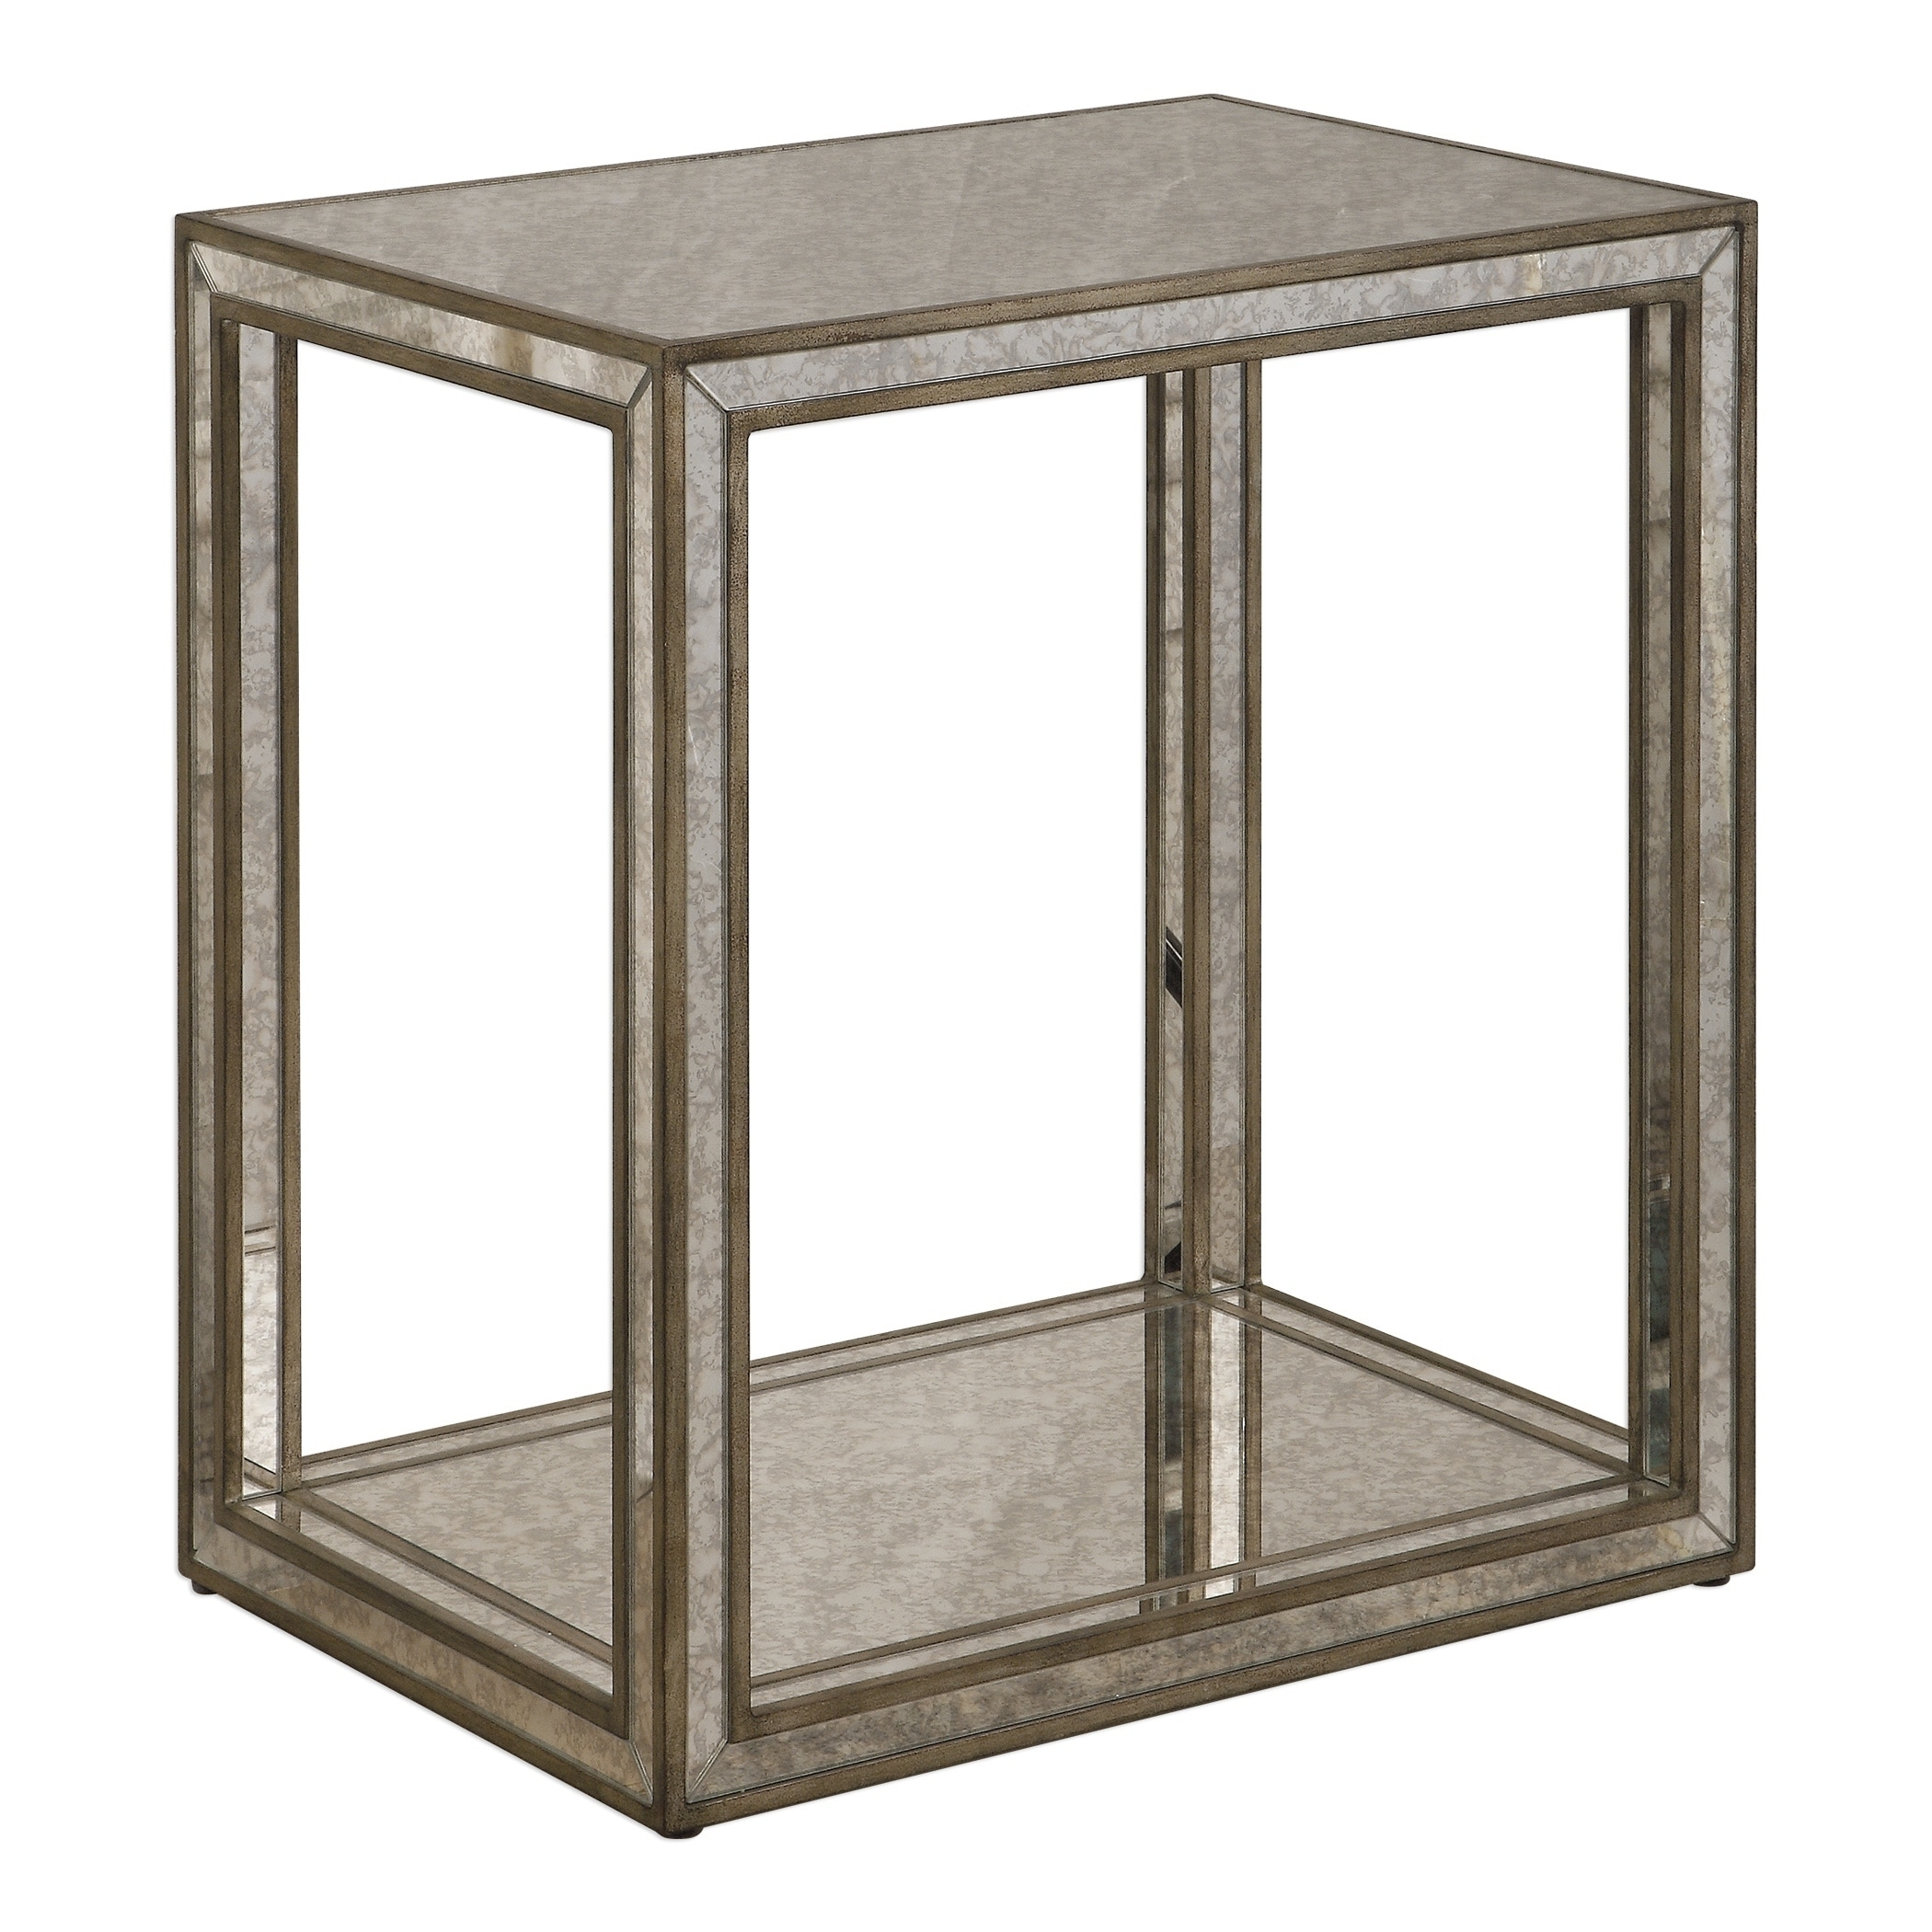 Shop Uttermost Julie Burnished Antique Gold Mirrored End Table Overstock 22042868